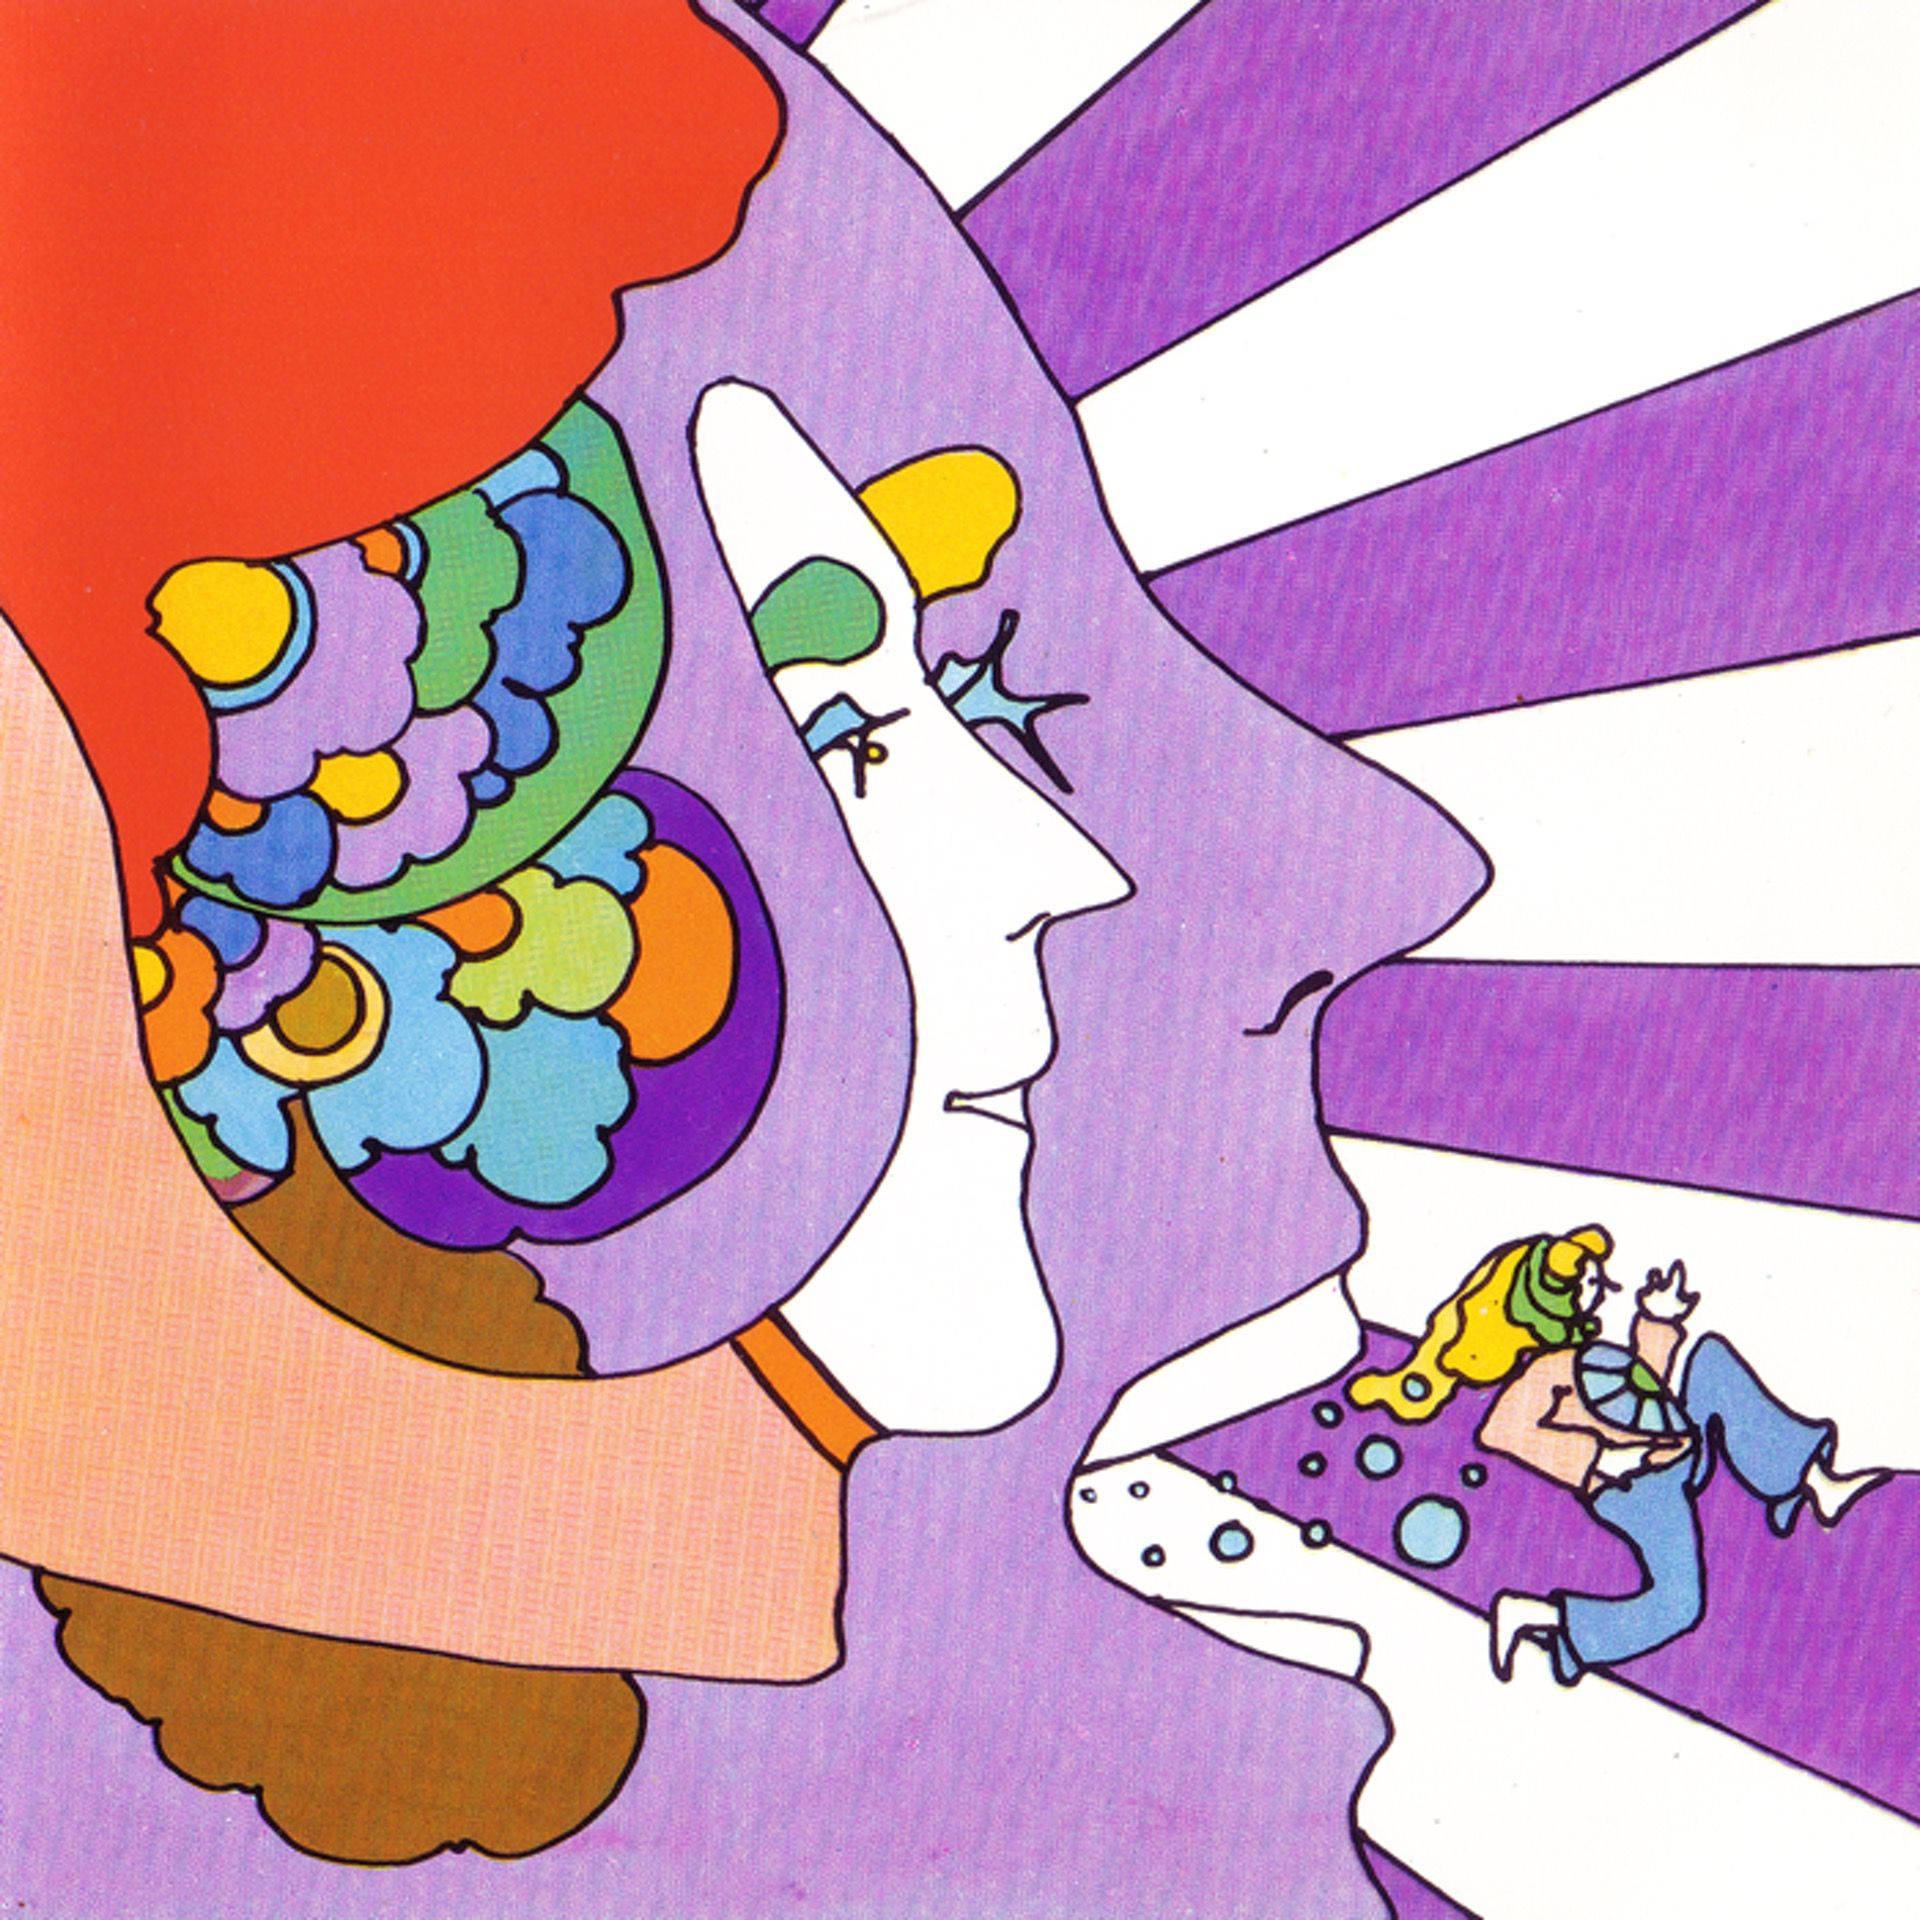 Illustration by Peter Max